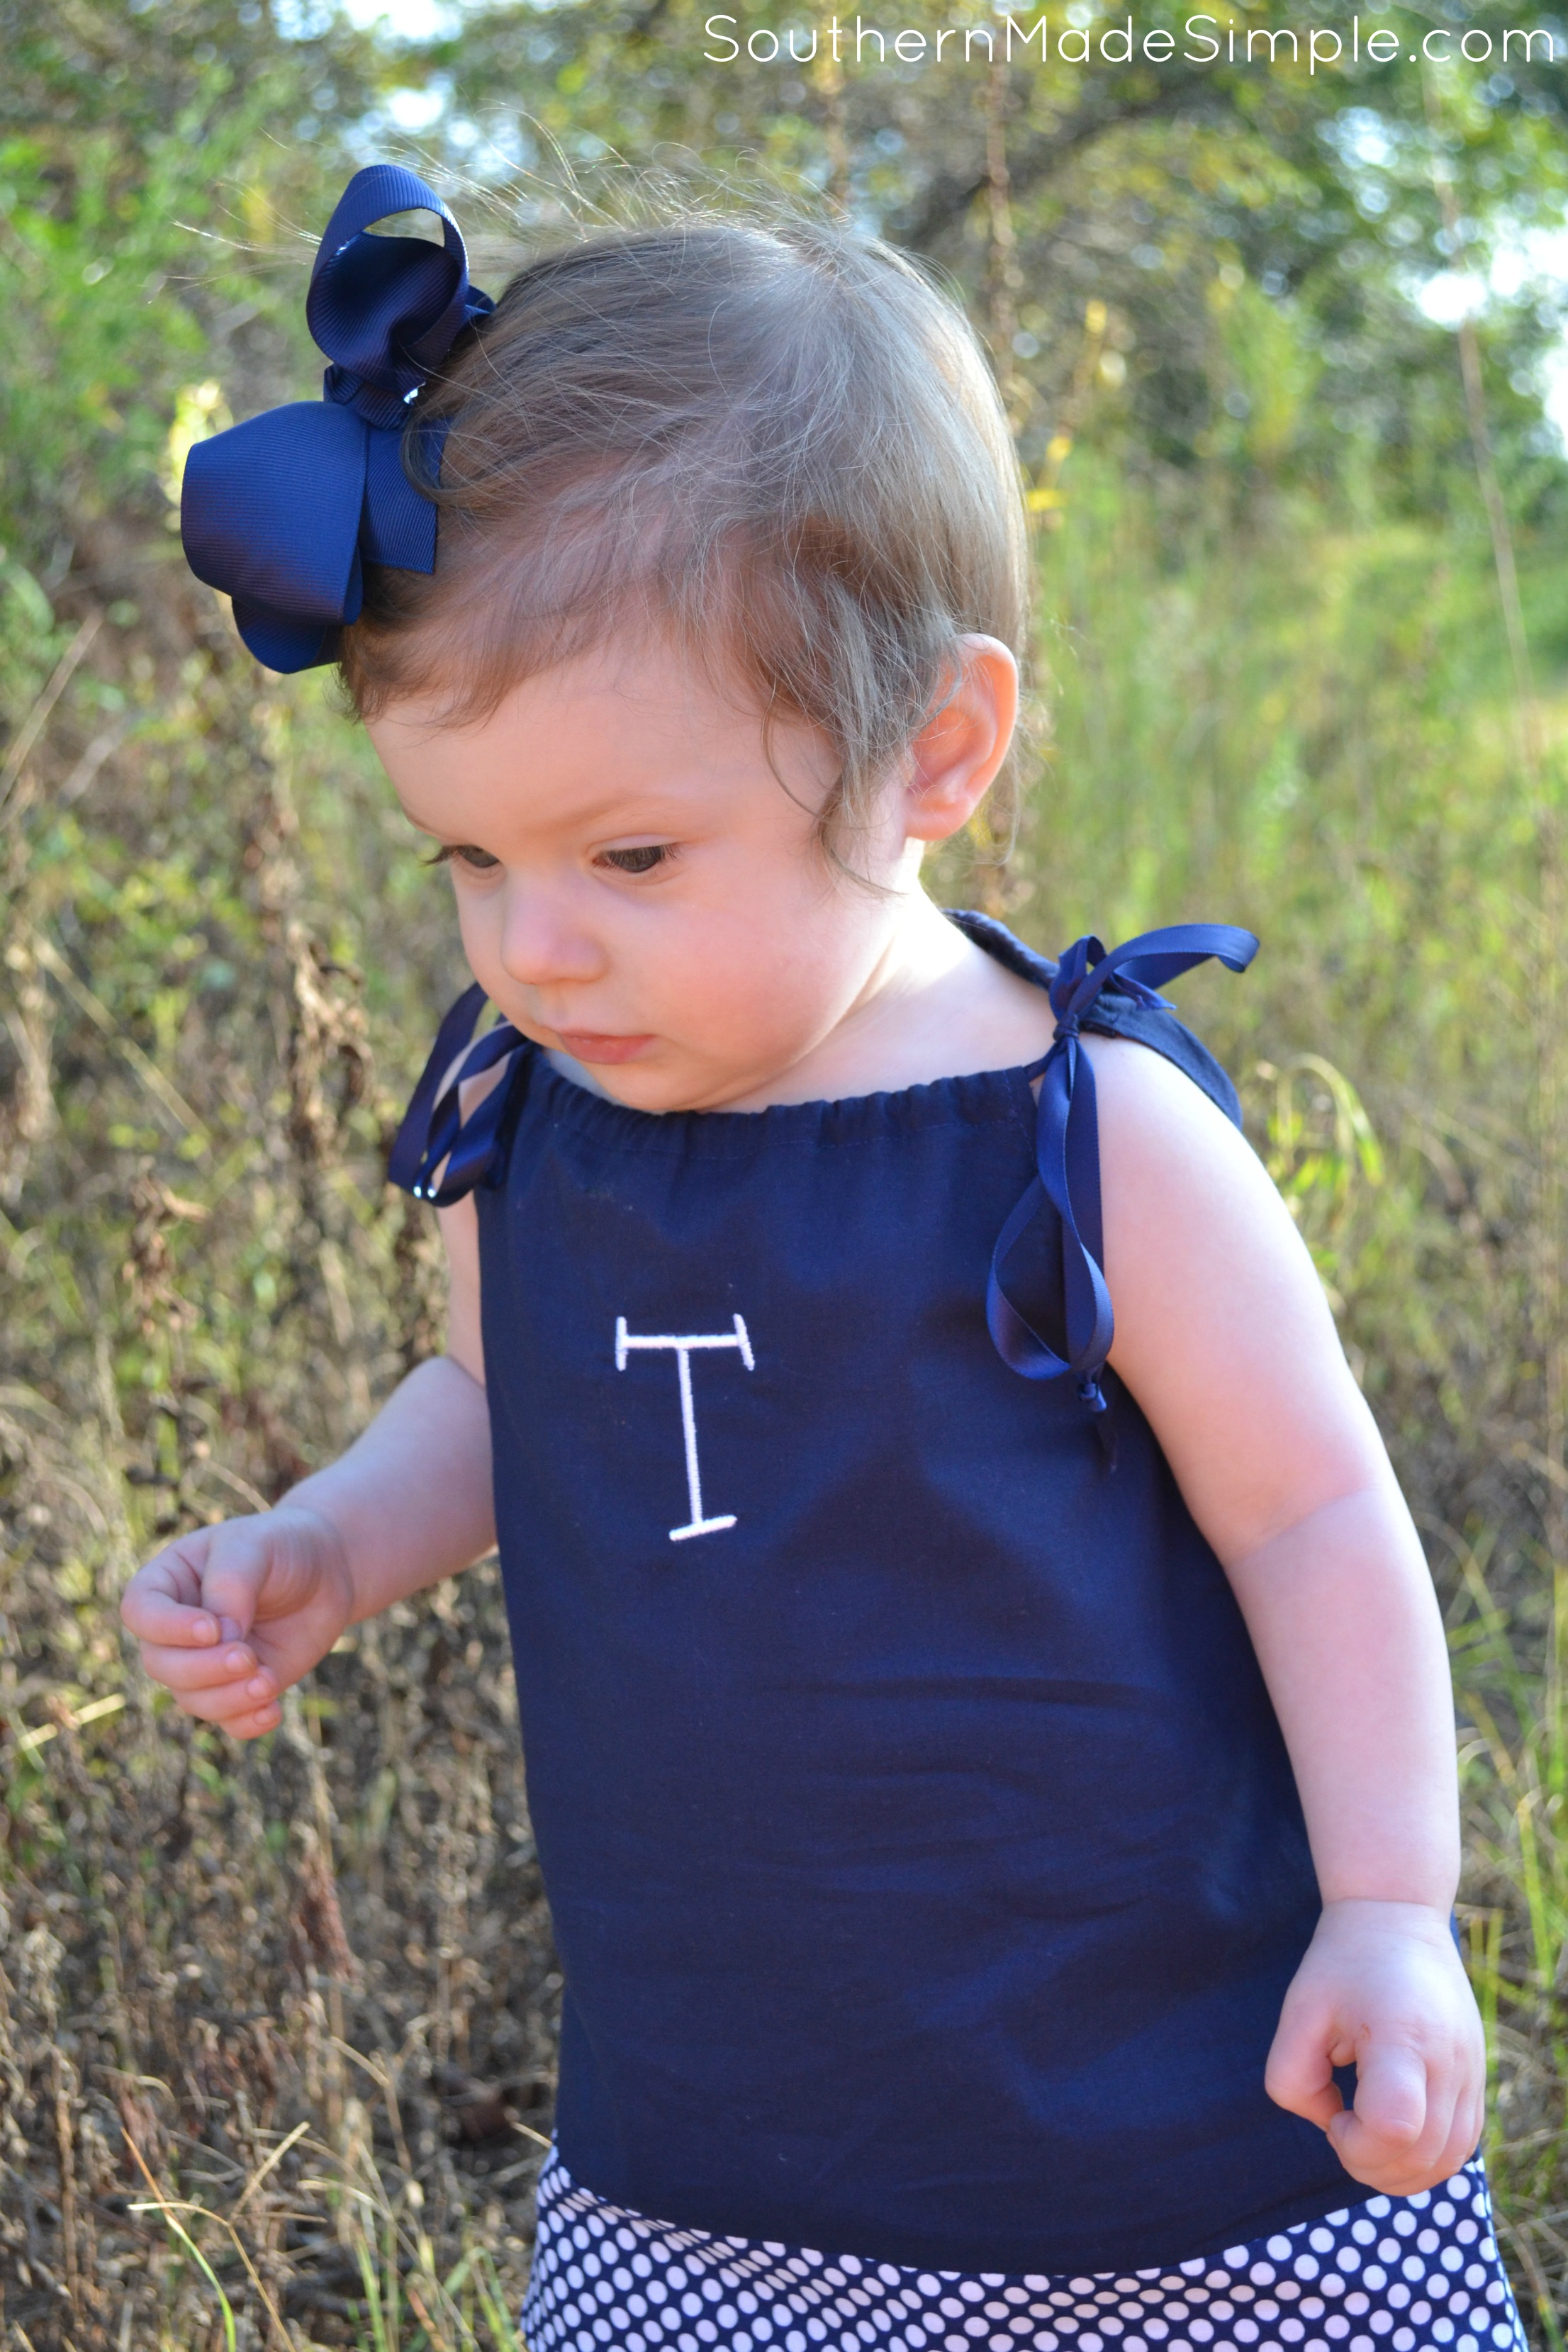 Kids Fashion Archives Southern Made Simple